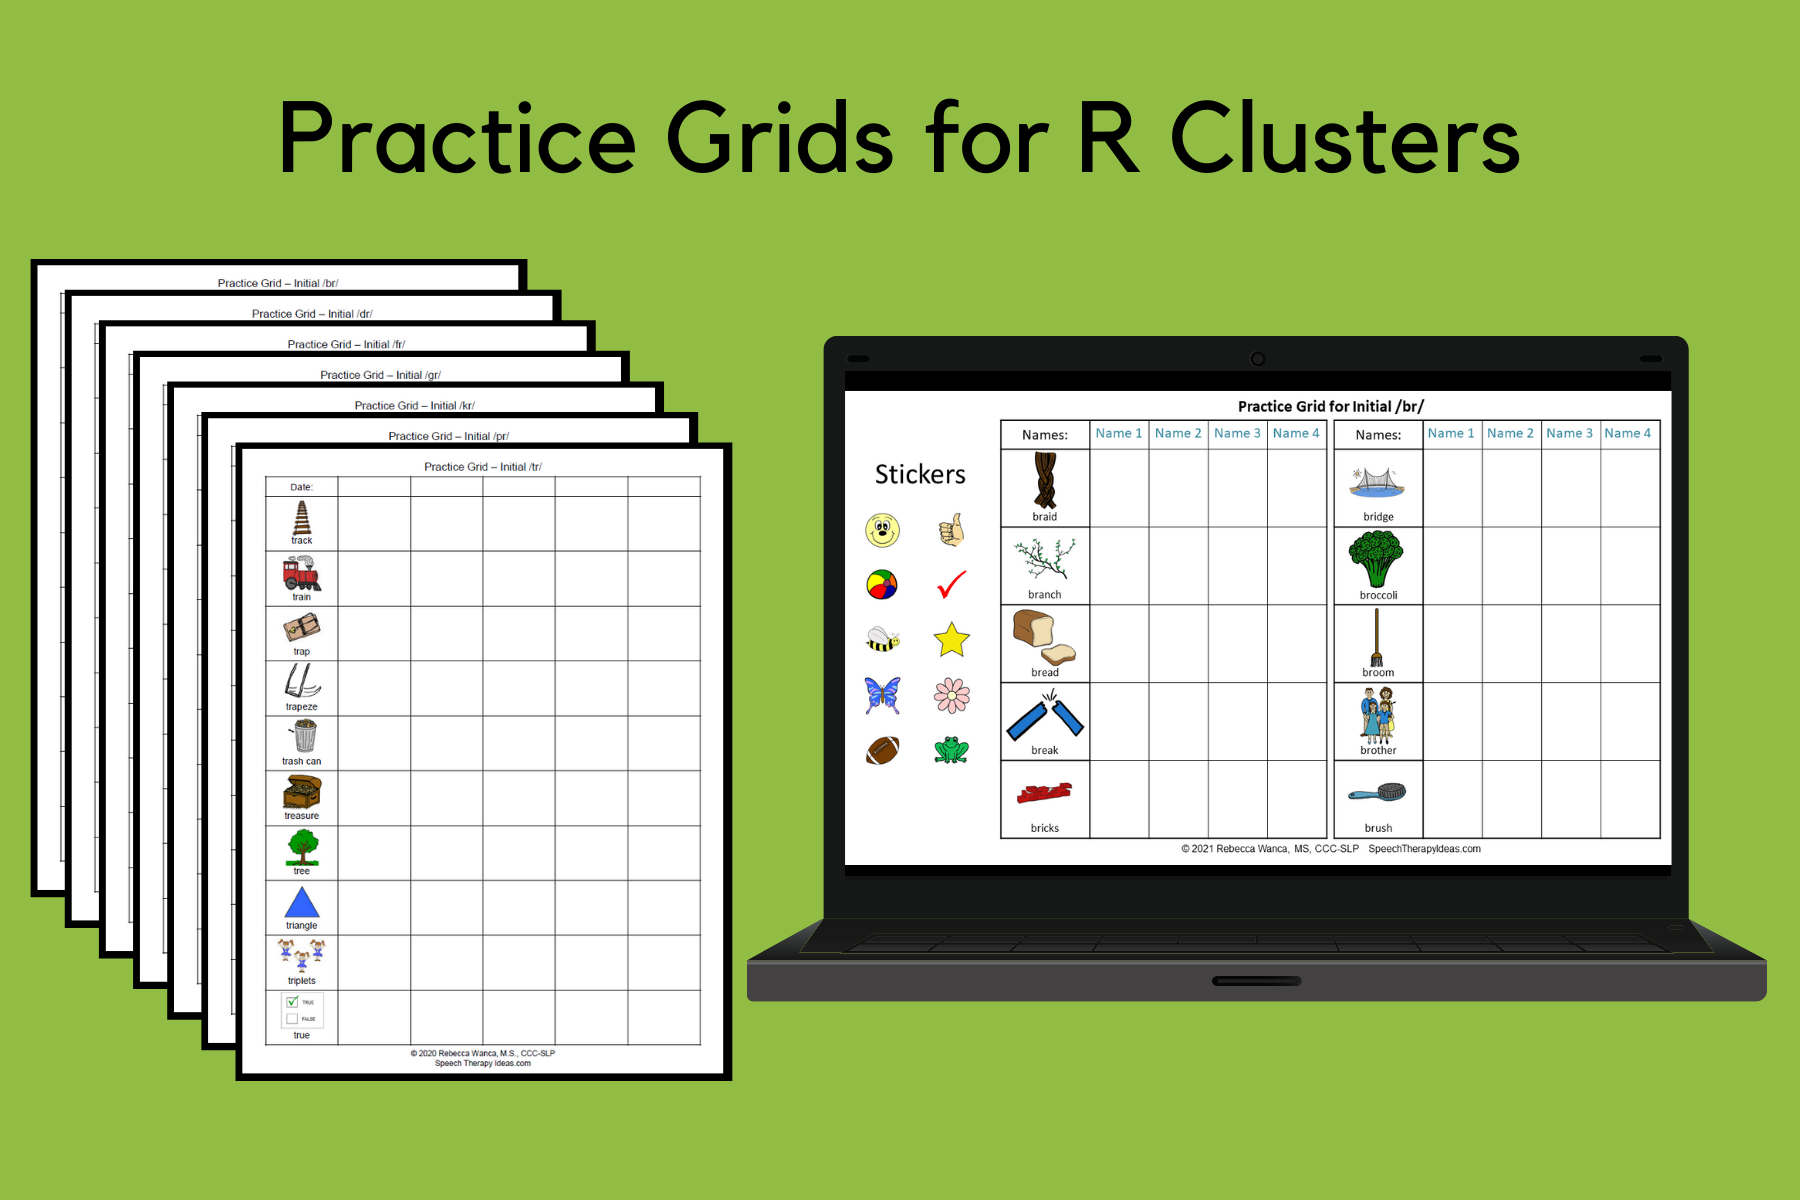 Practice Grids For R Clusters